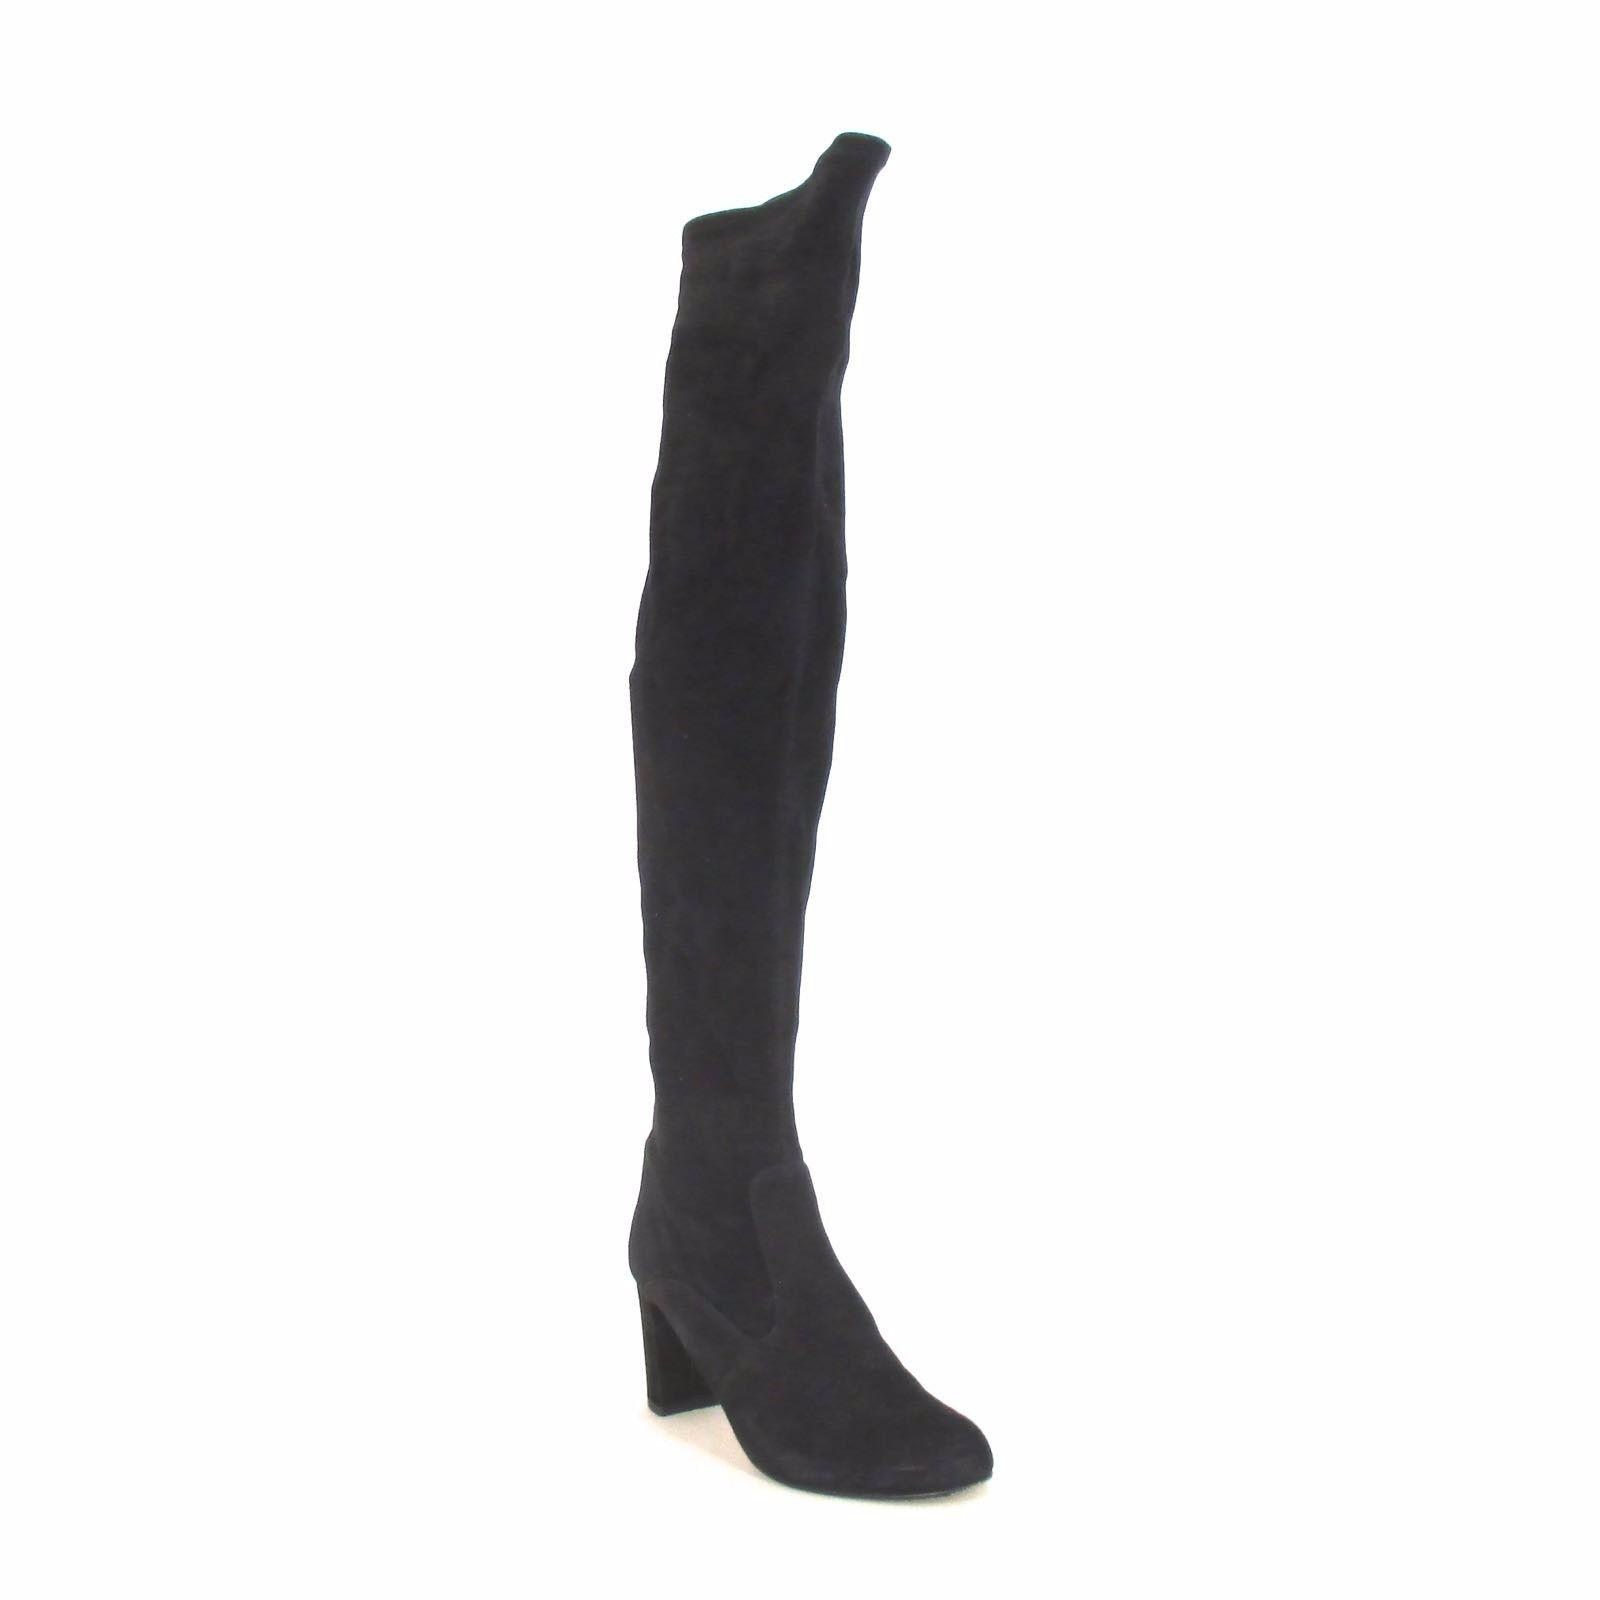 Valentino Black Over The Knee Boots/Booties Size US 7.5 Regular (M, B)